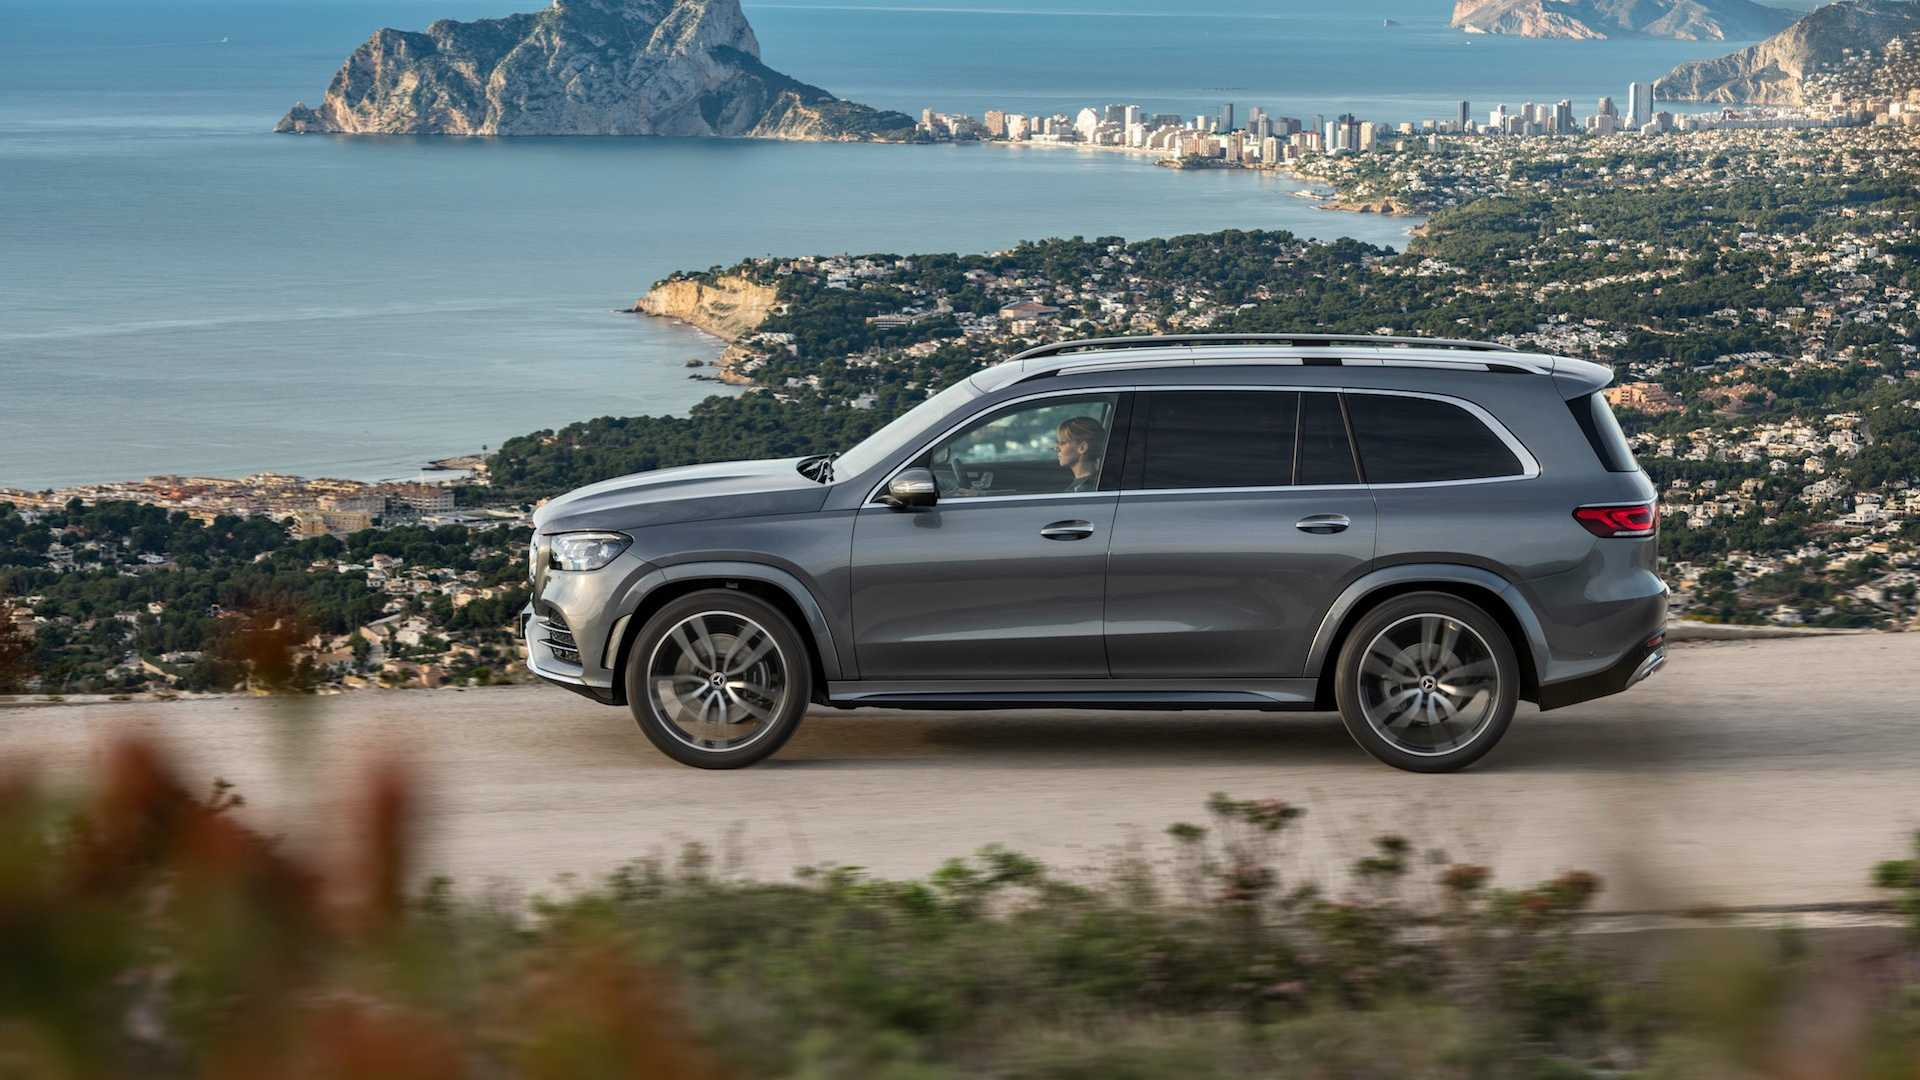 49 The Best 2020 Mercedes GLS Exterior And Interior